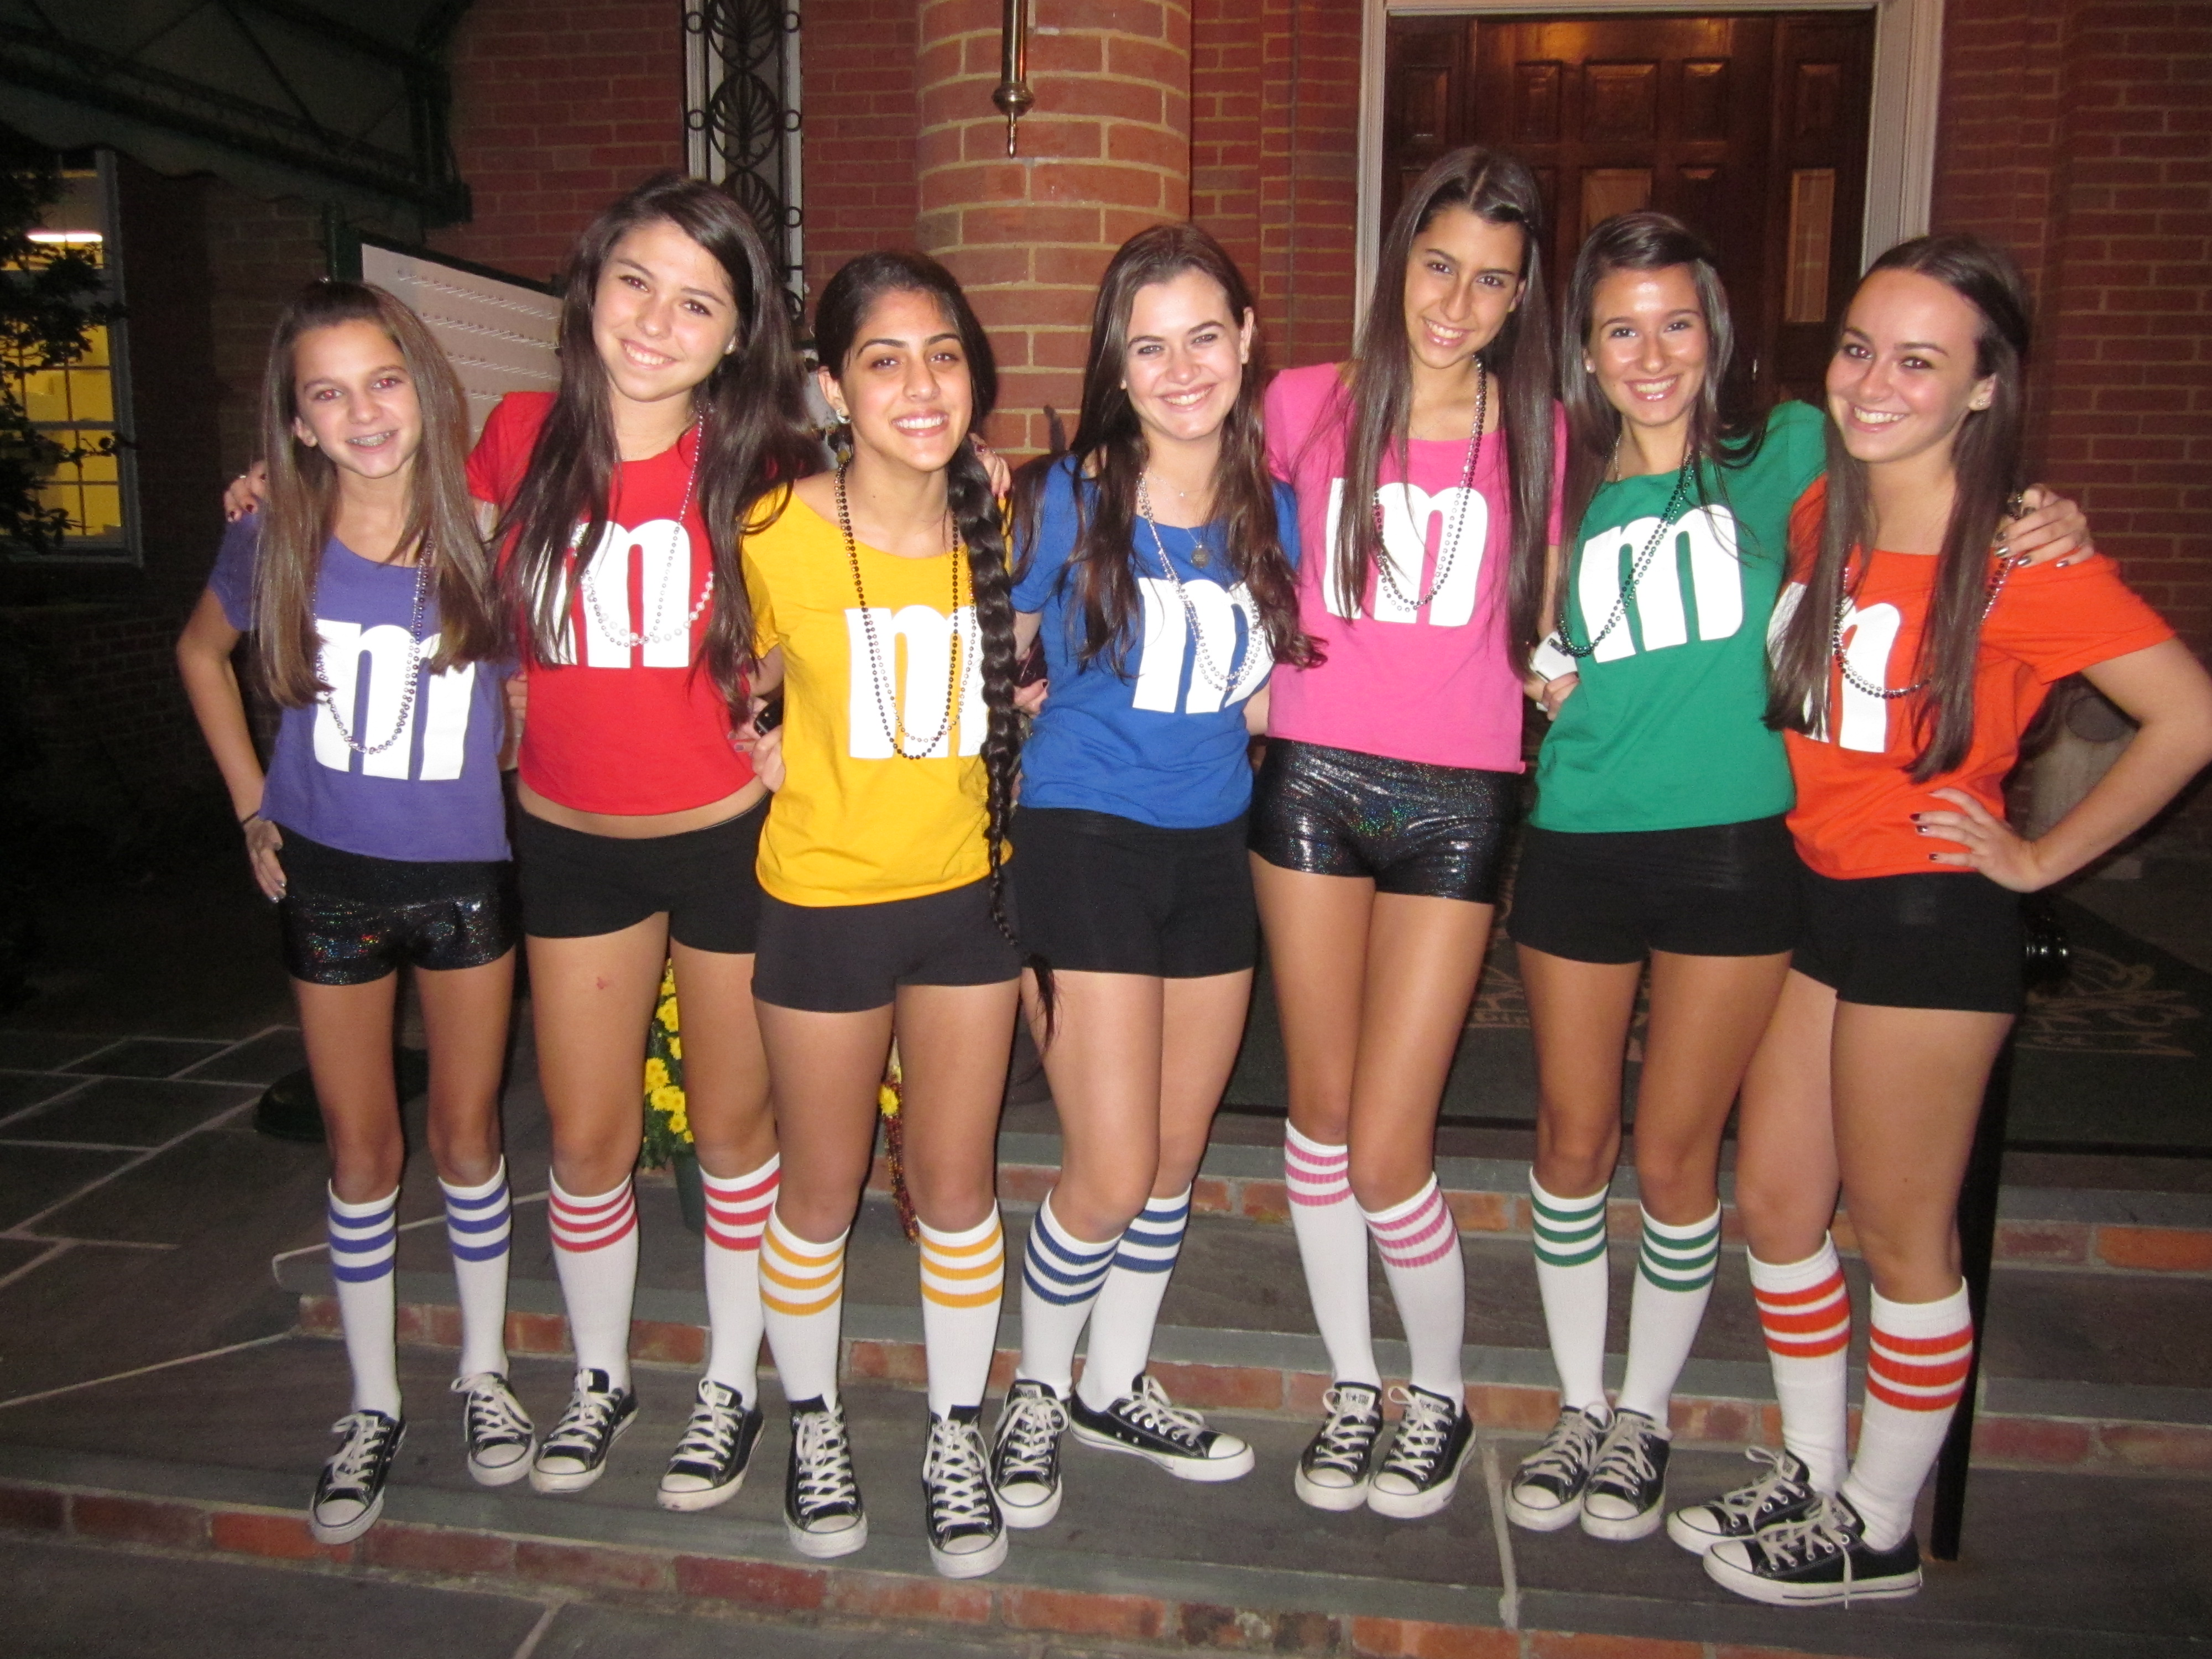 130 group halloween costume ideas brit co mms its solutioingenieria Gallery